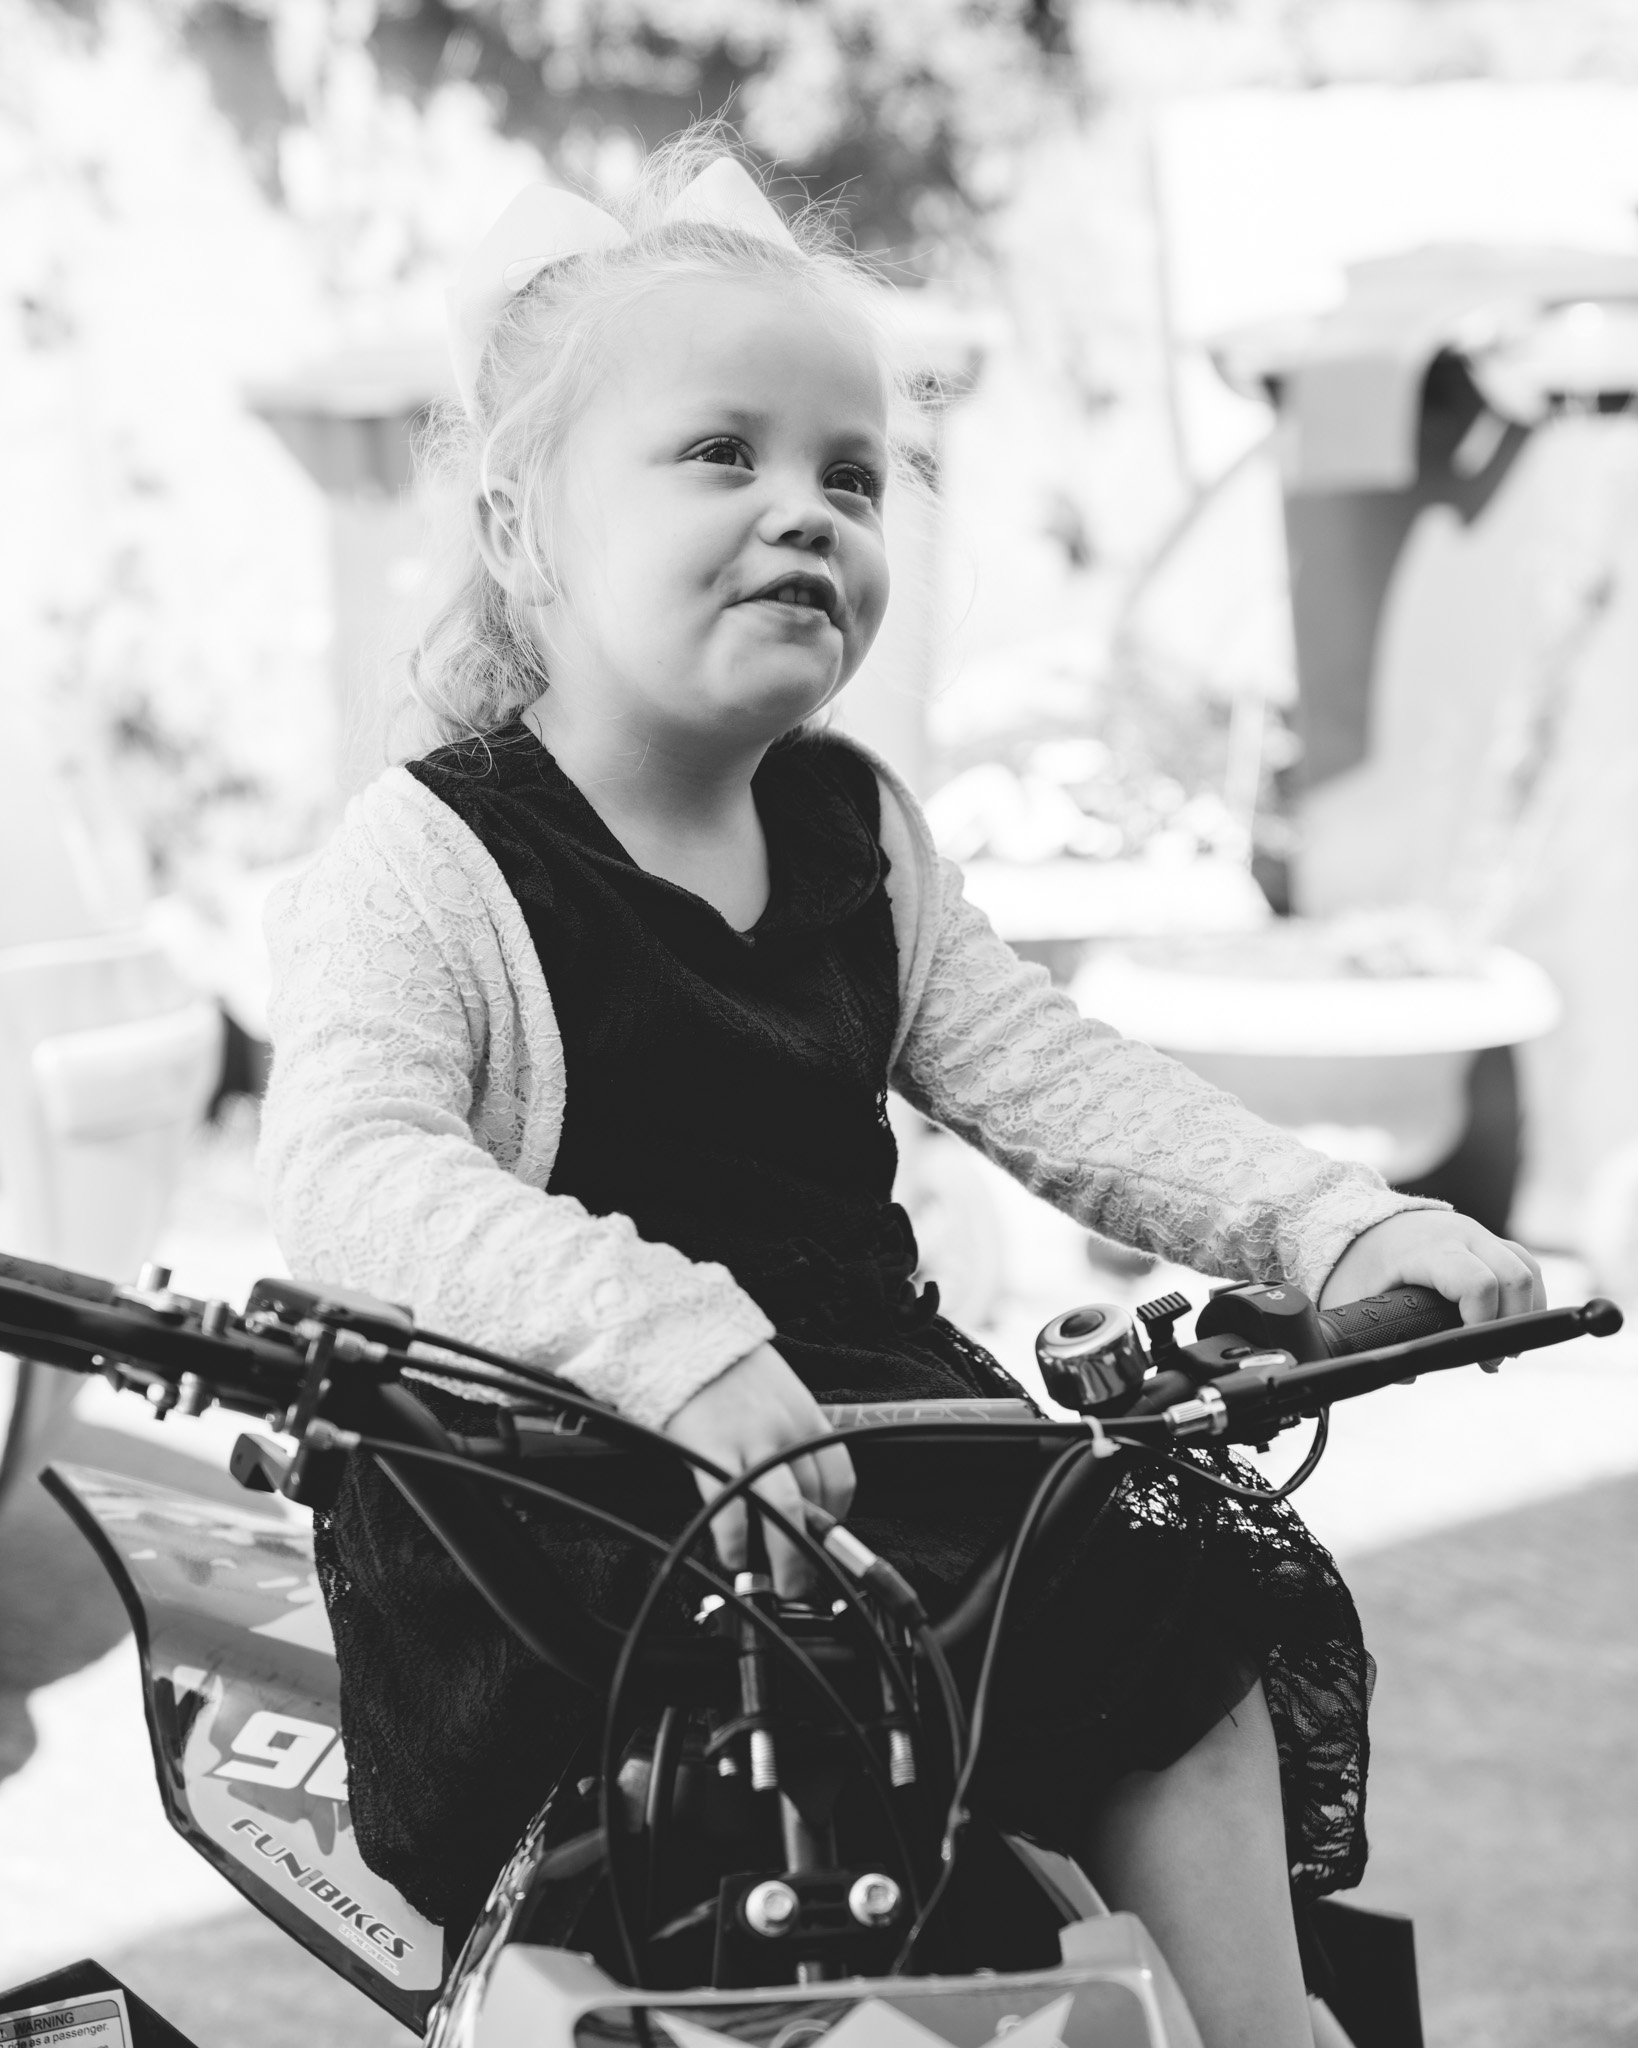 Four year old toddler girl on a quadbike